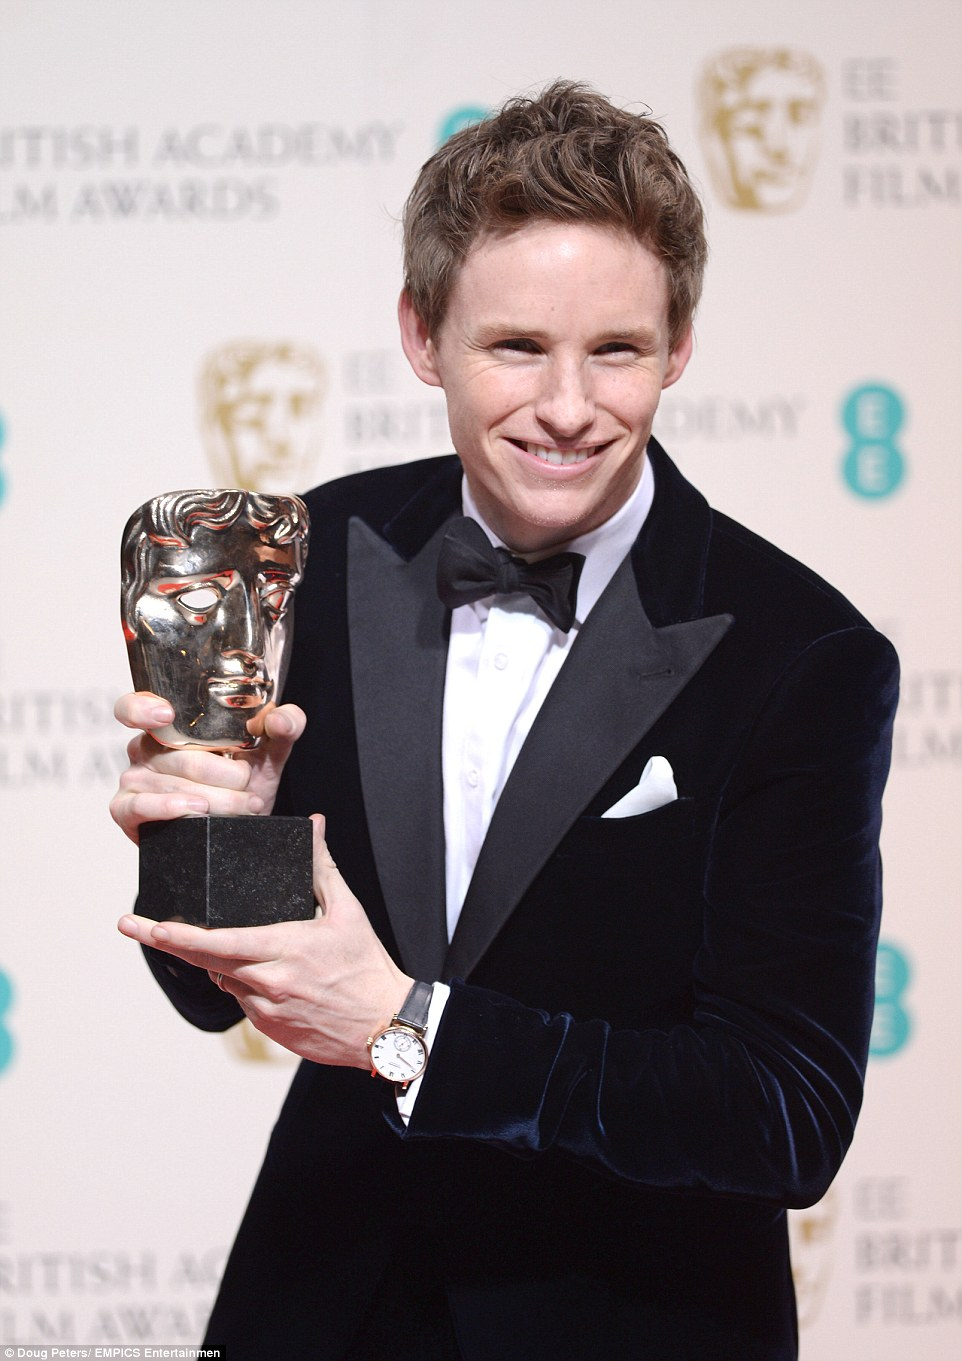 https://www.theplace.ru/archive/eddie_redmayne/img/913_he_s_on_a_role_eddie_s_latest_win_continues_to_full_belief_that_a_154_1423436706956.jpg